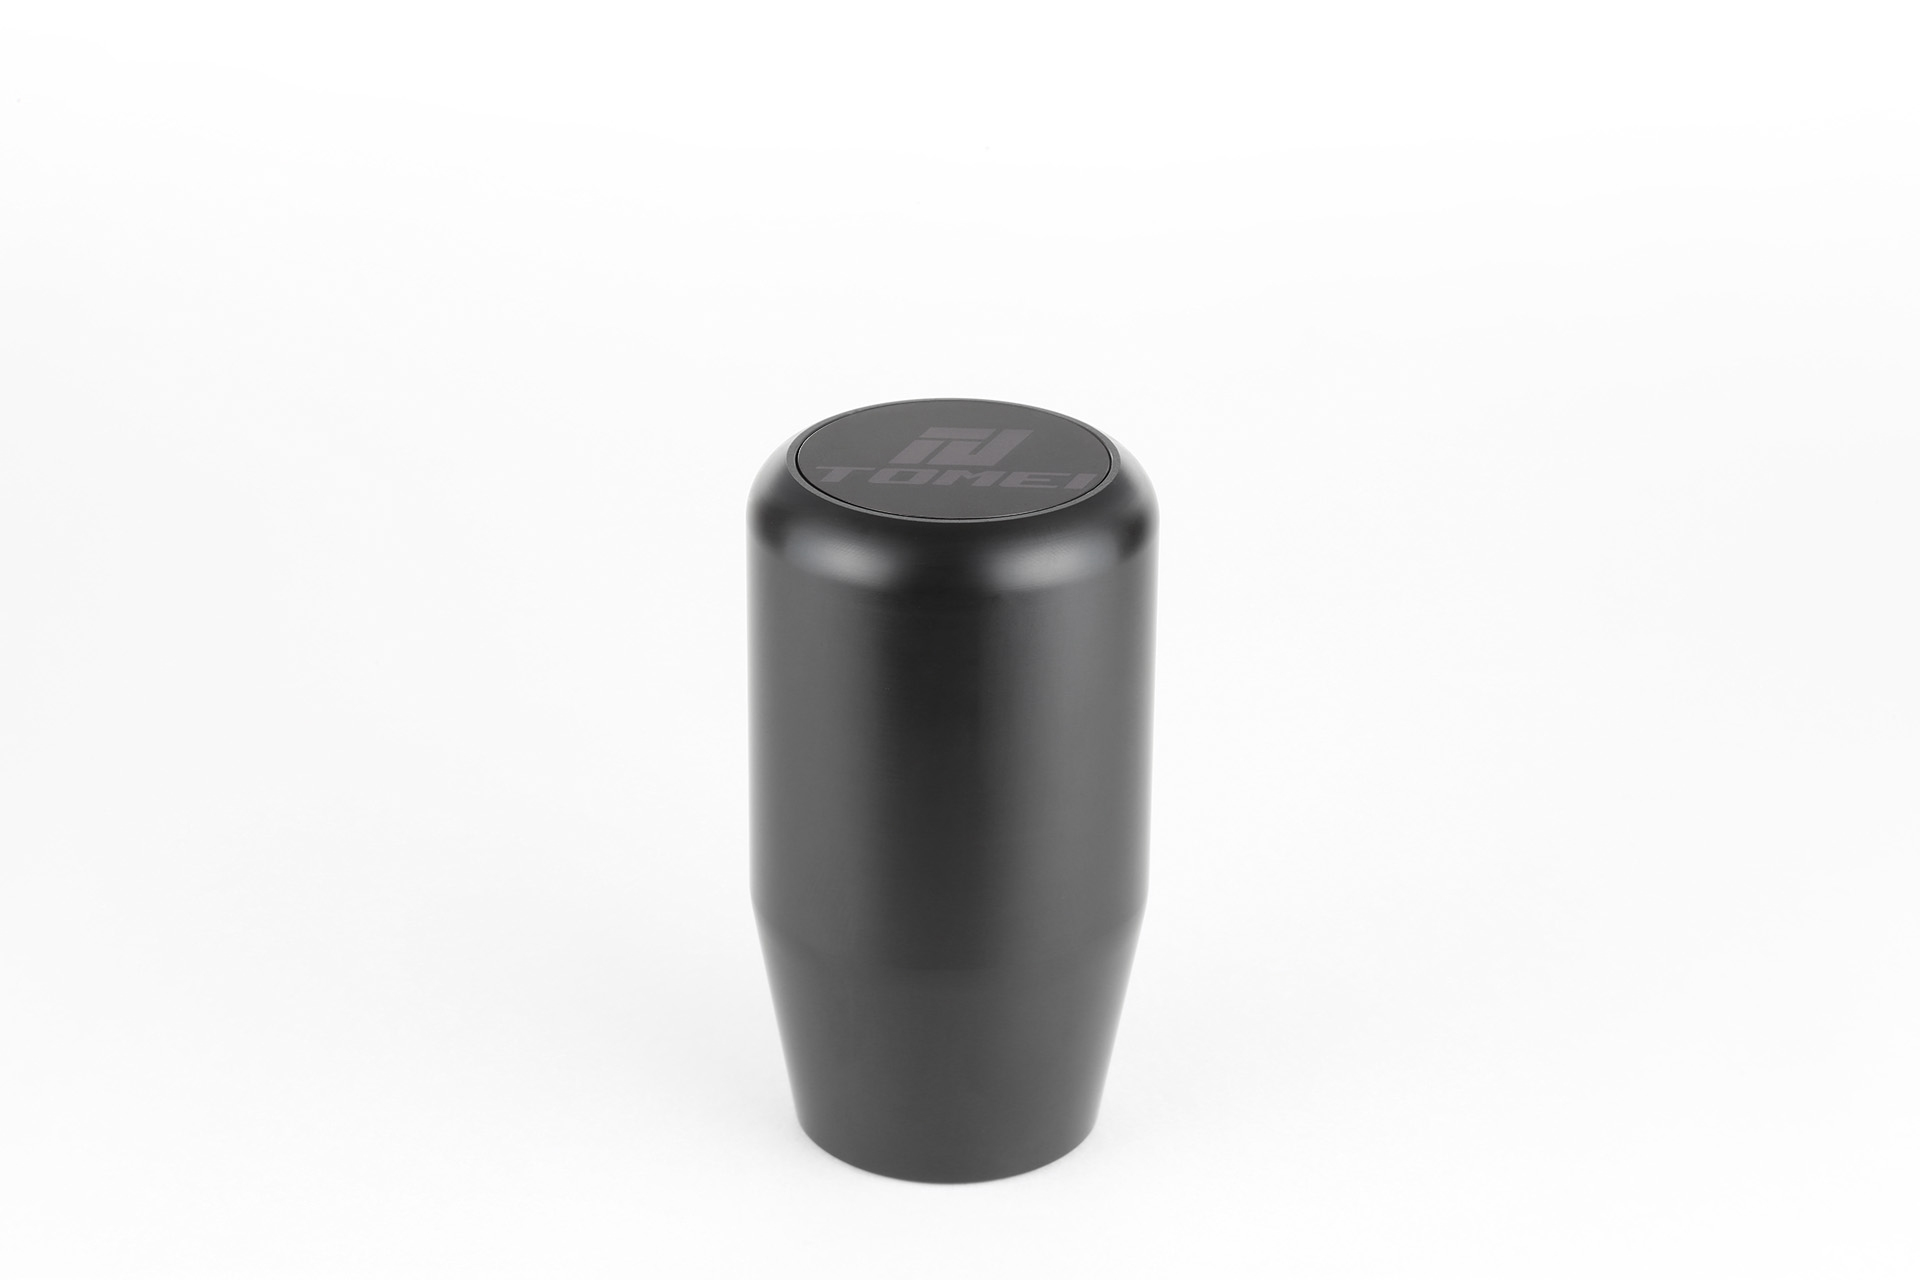 Tomei Duracon Shift Knob Type-S M12-P1.25